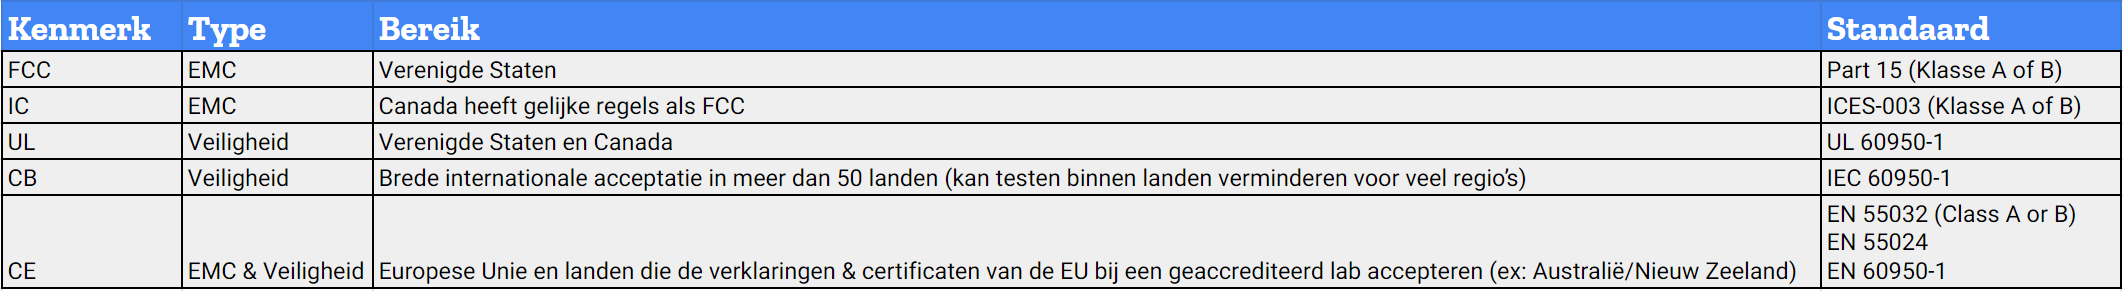 Table Hardware Certifications Dutch